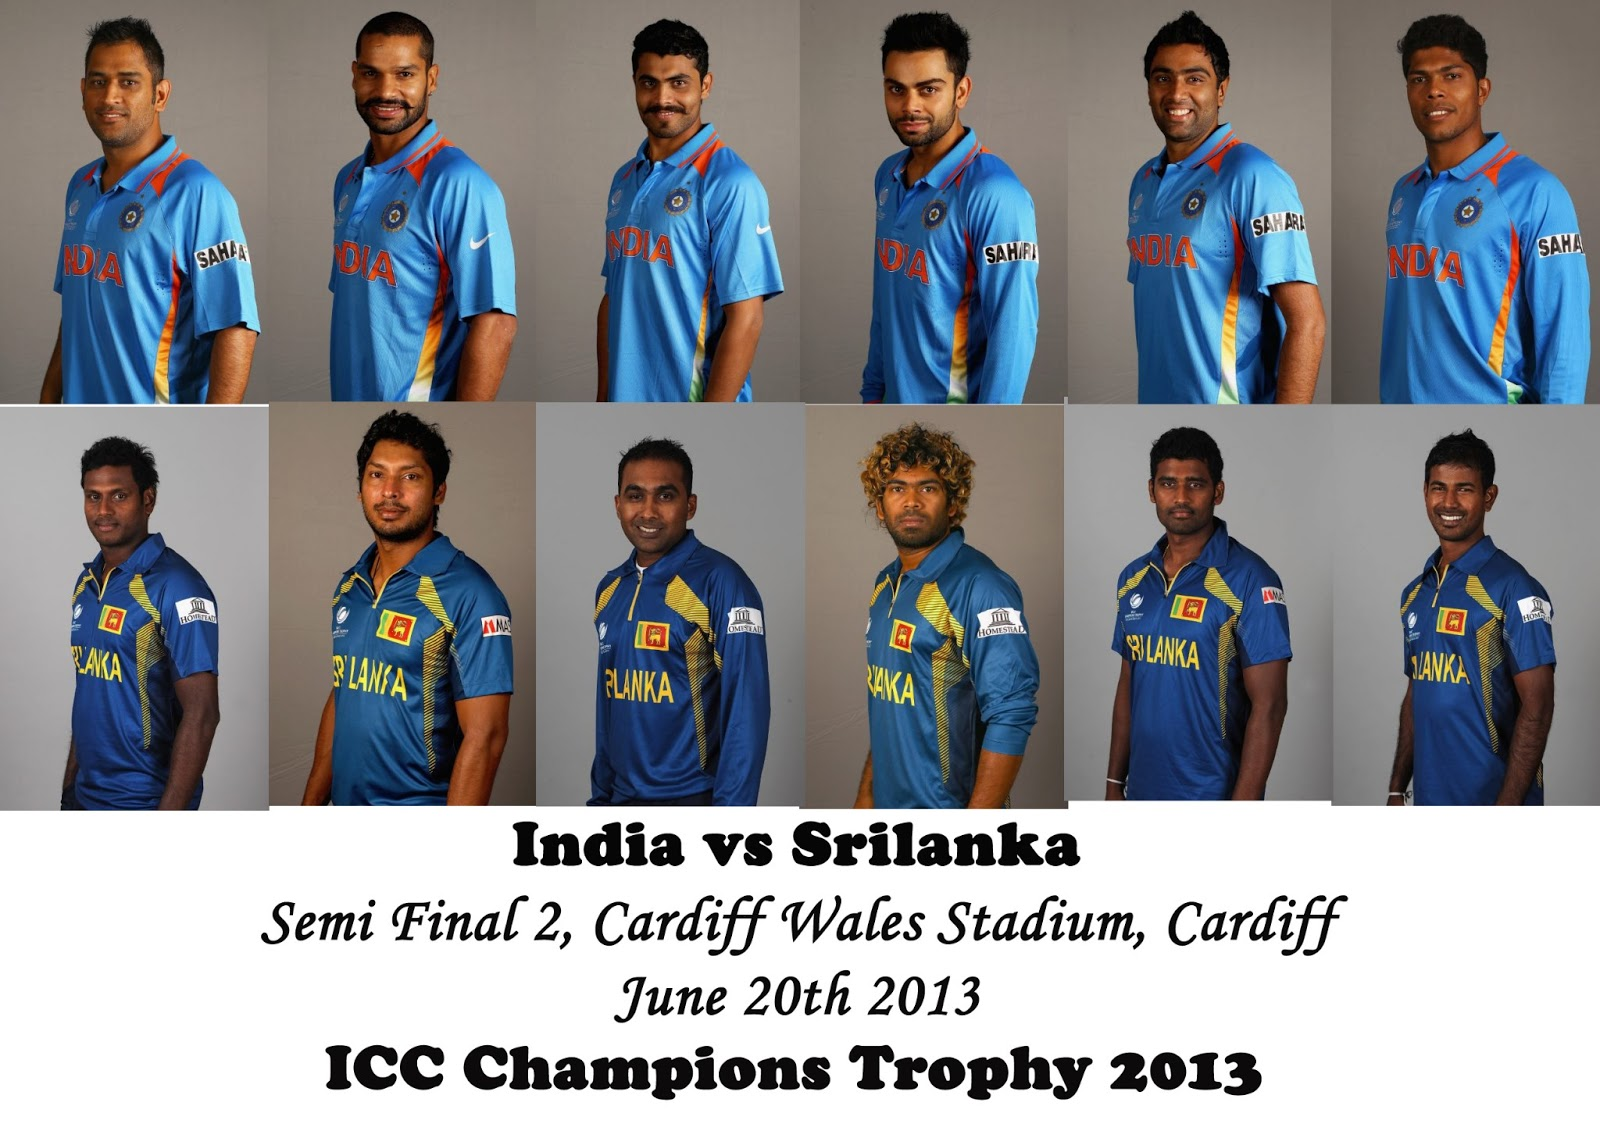 India-vs-Srilanka-Semi-Final-Champions-Trophy-2013